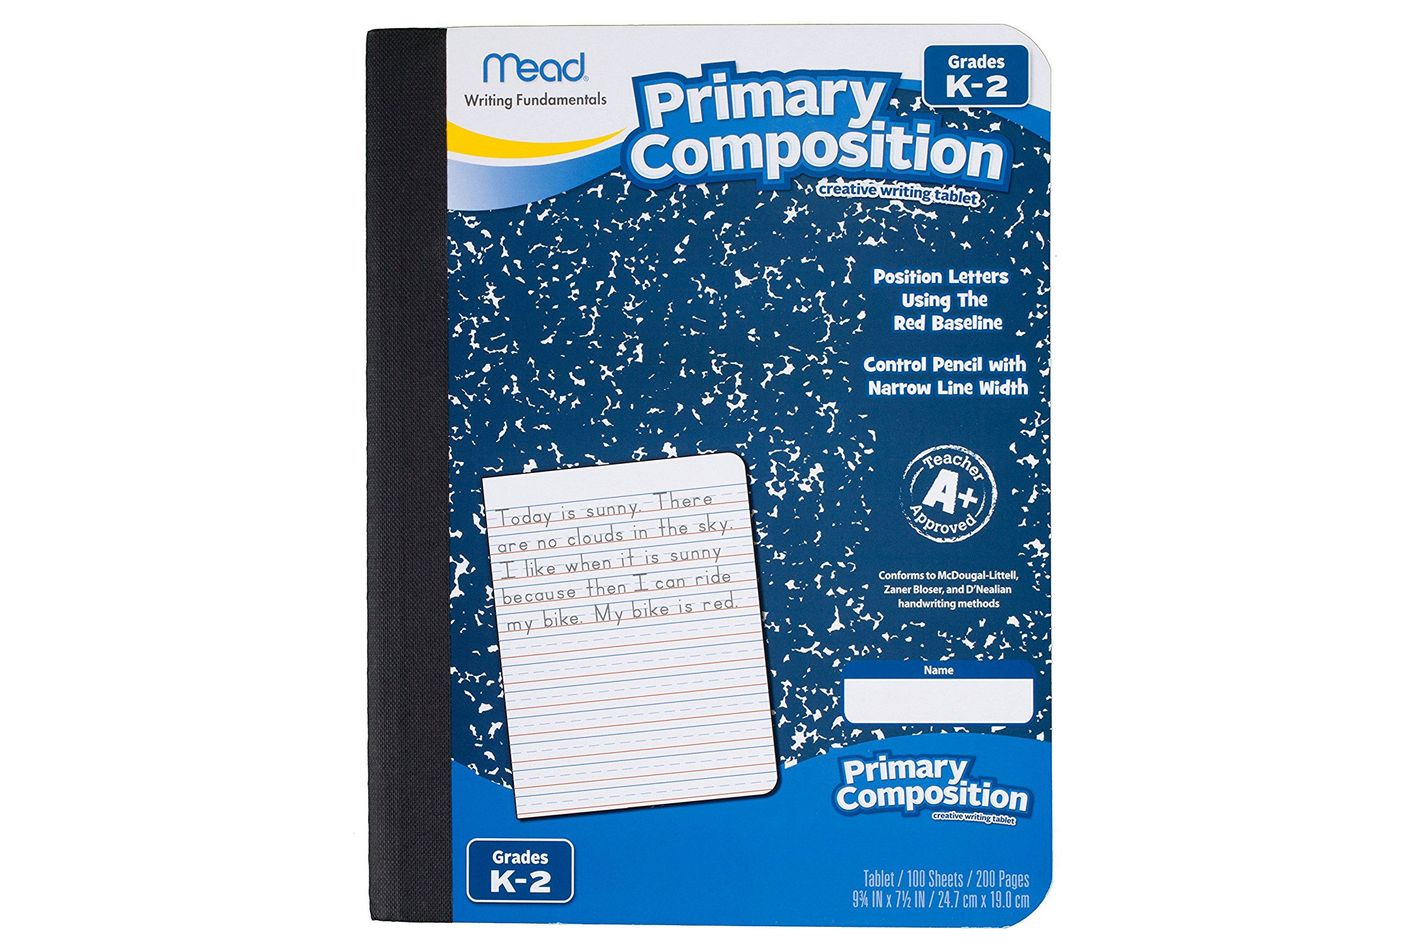 Mead Primary Composition Notebook